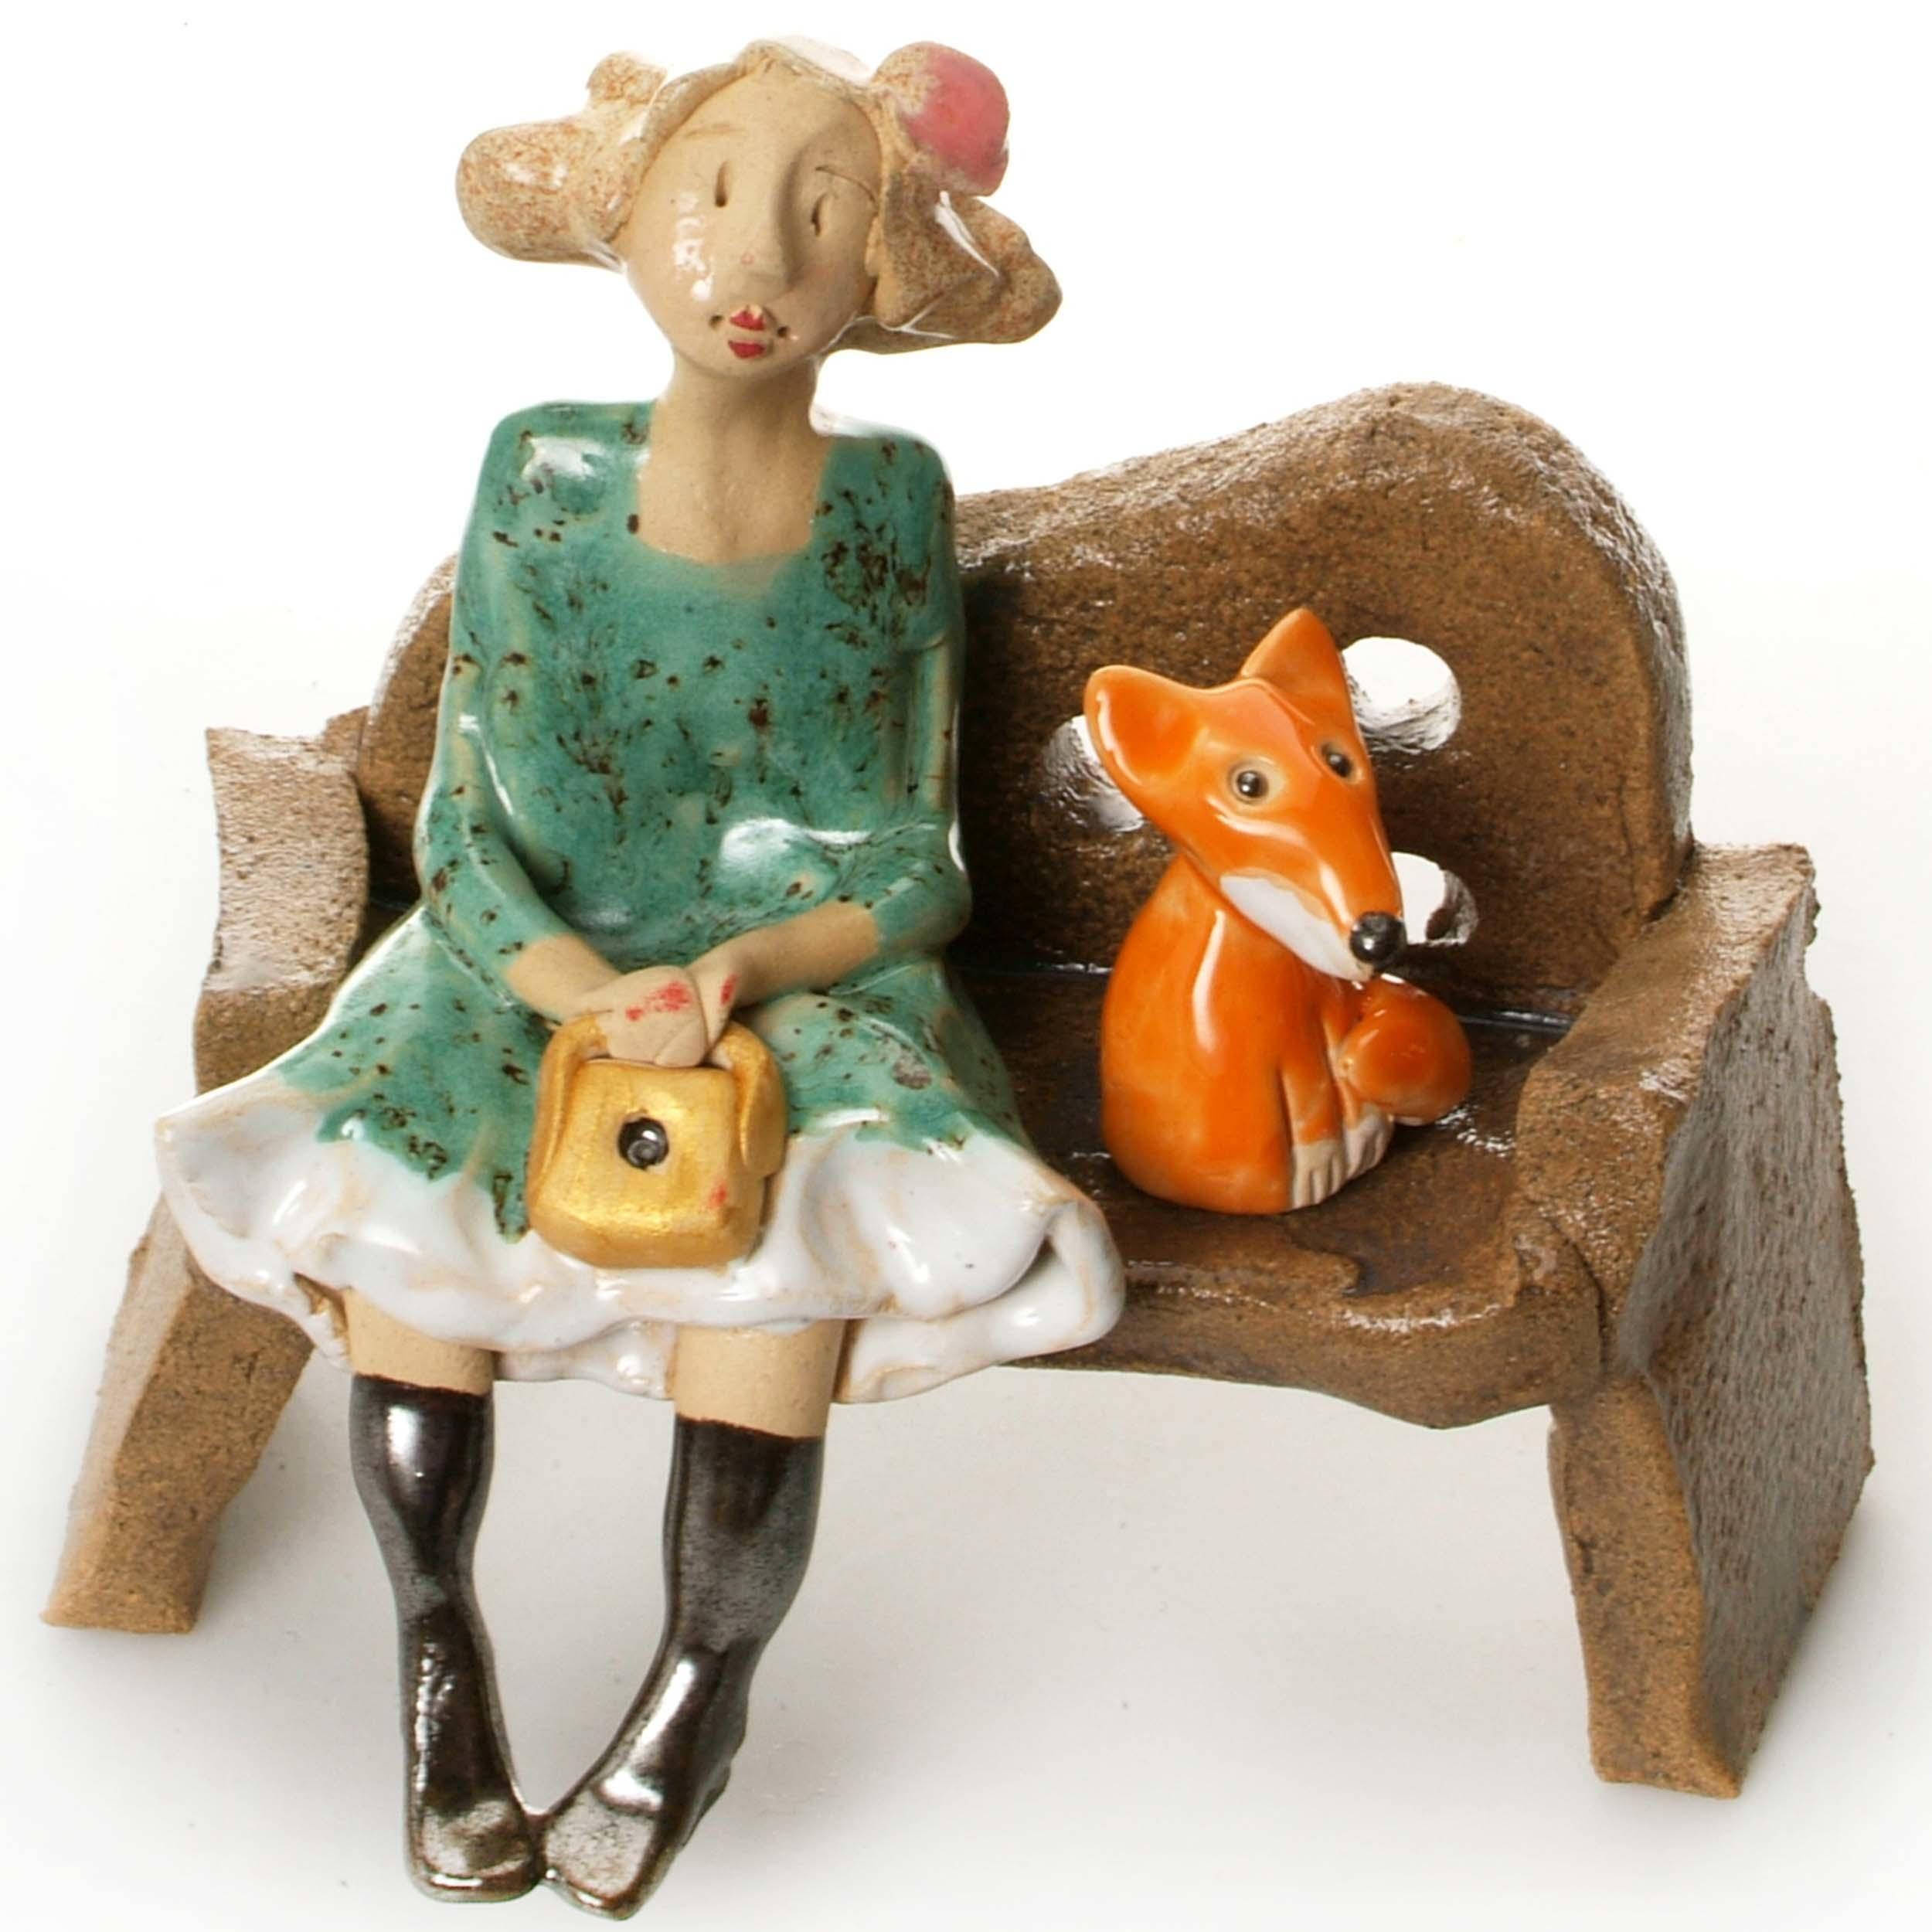 Ceramic Foxy Lady Figurine sitting on Bench with Fox